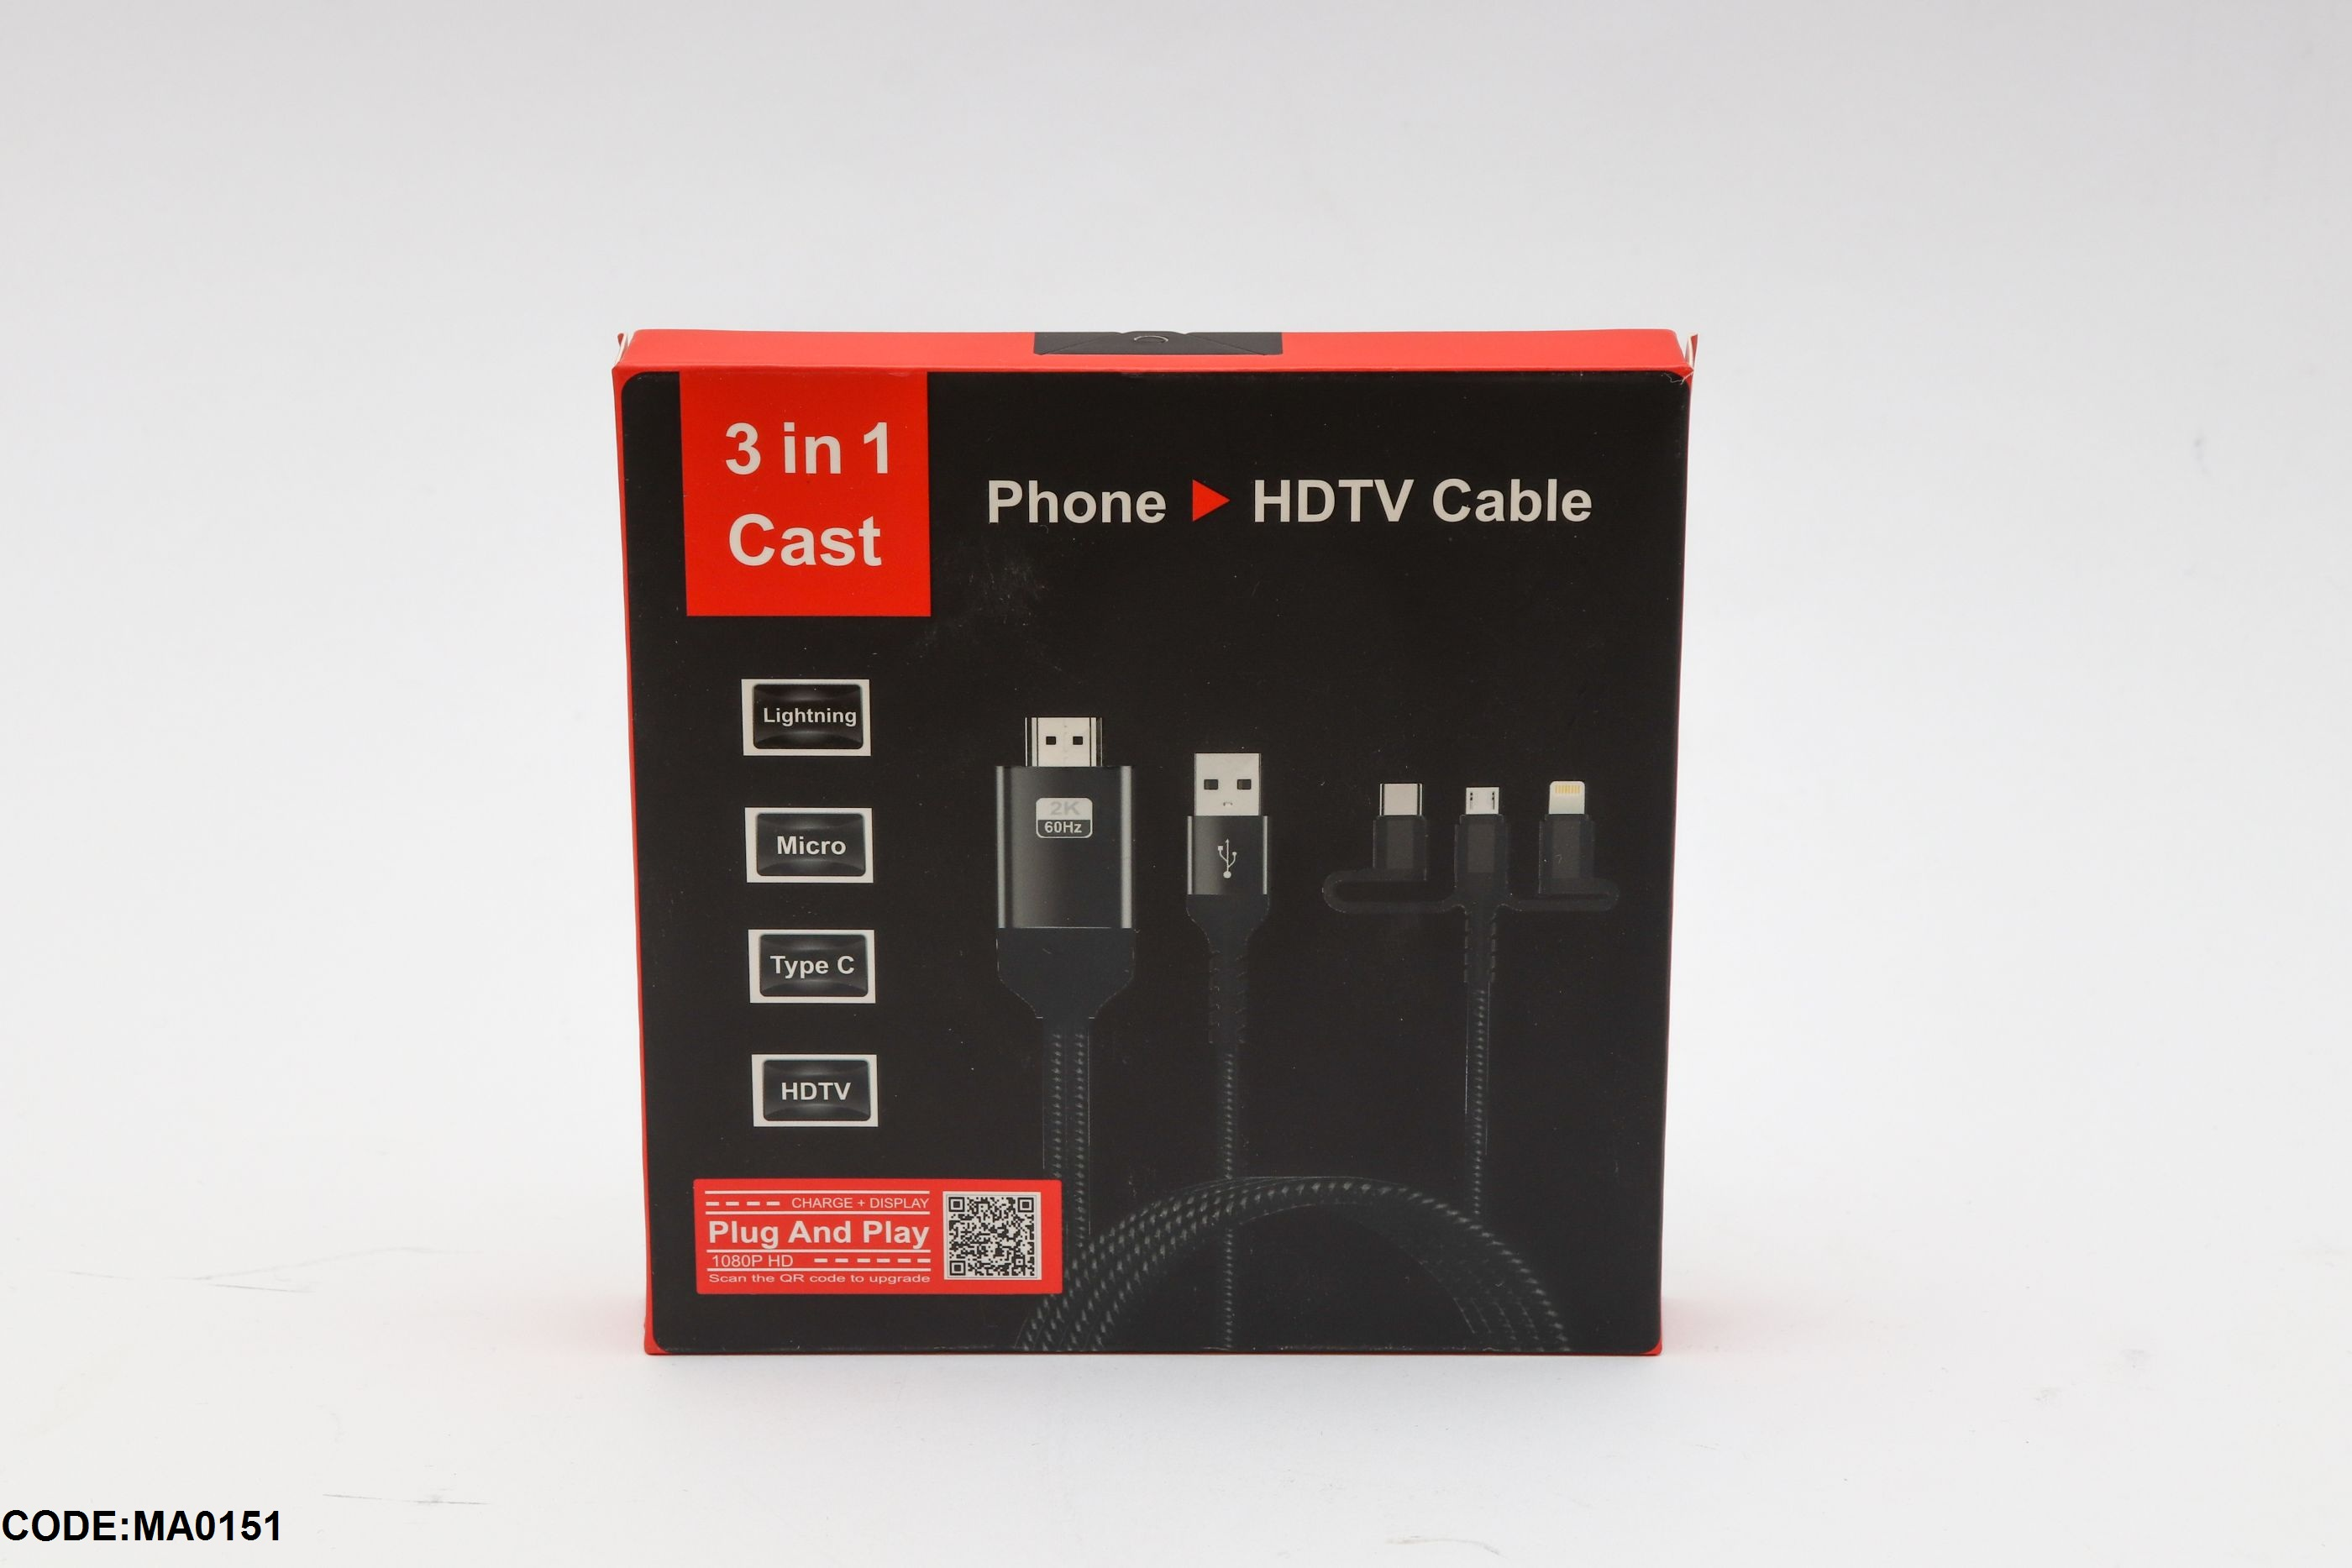 Phone HDTV Cable 3 in 1 Cast